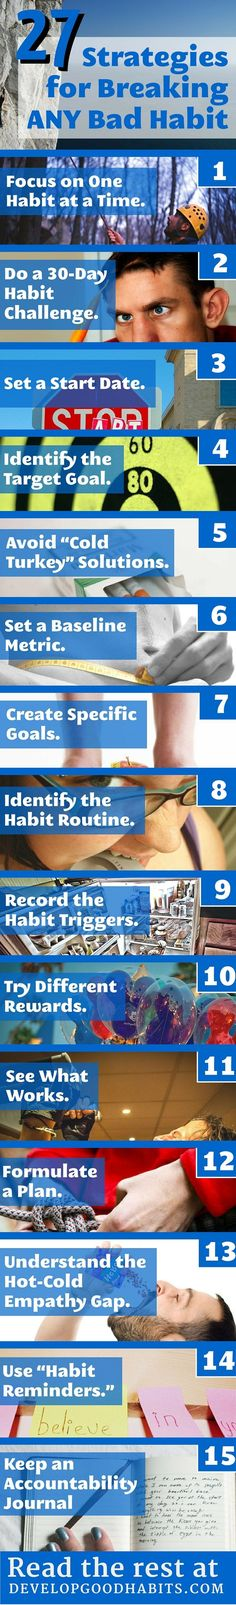 27 Proven Steps to Break a Bad Habit (without the Cravings)